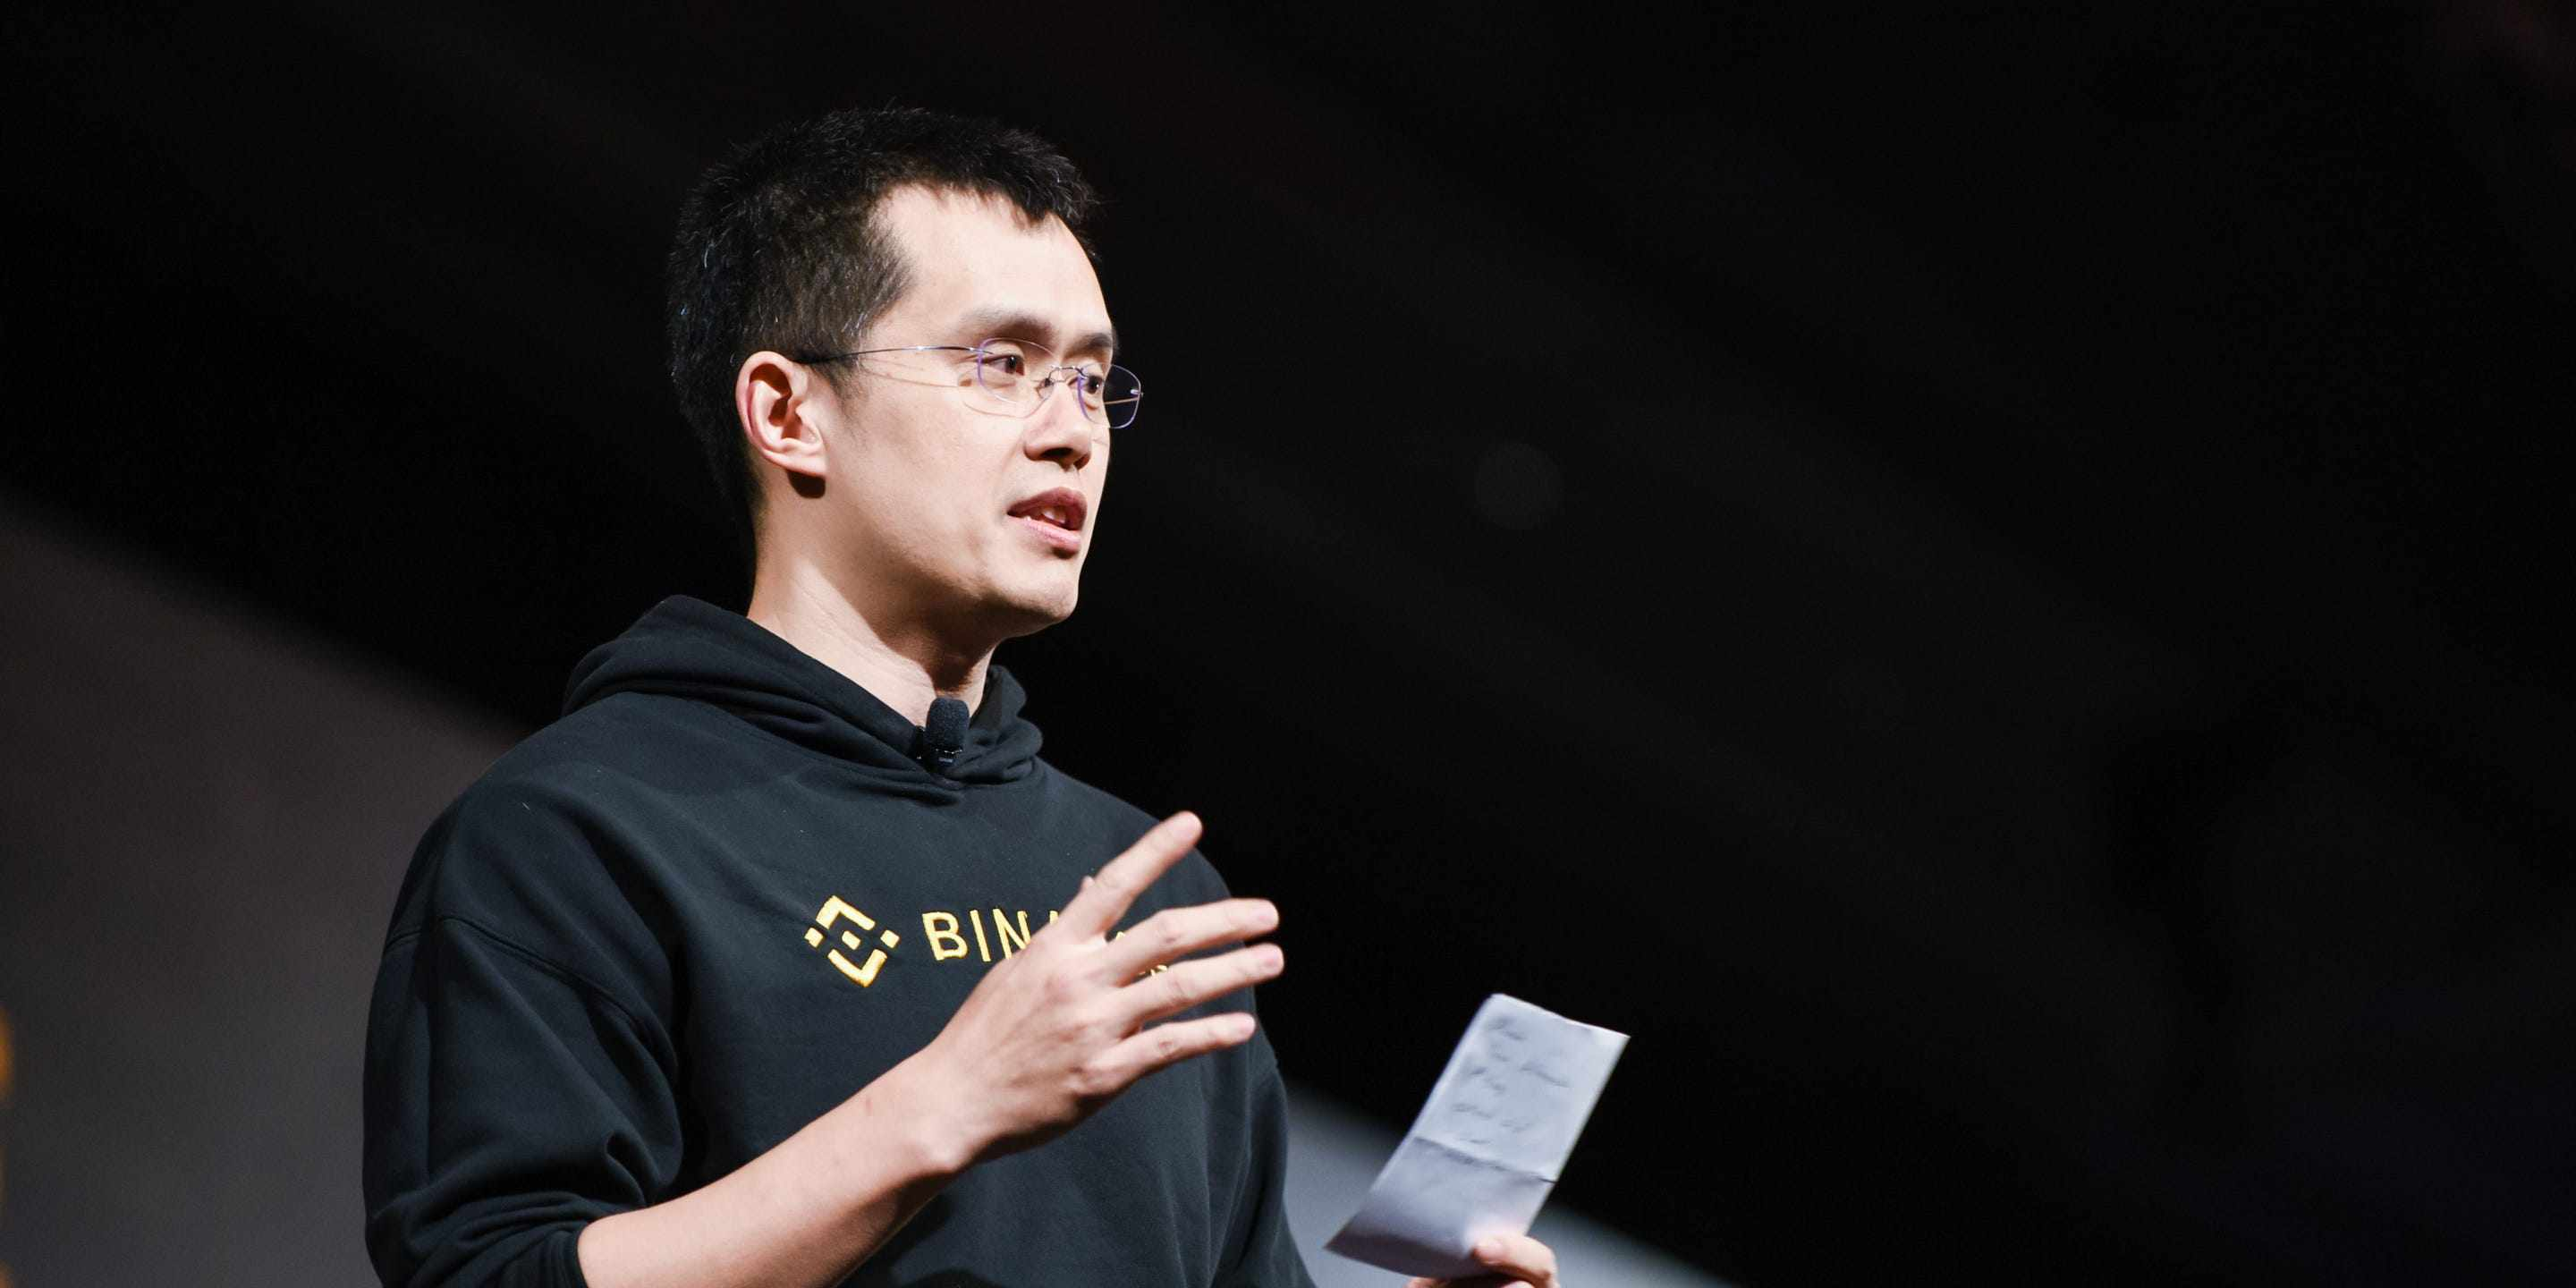 herd binance ceo mentality bitcoin